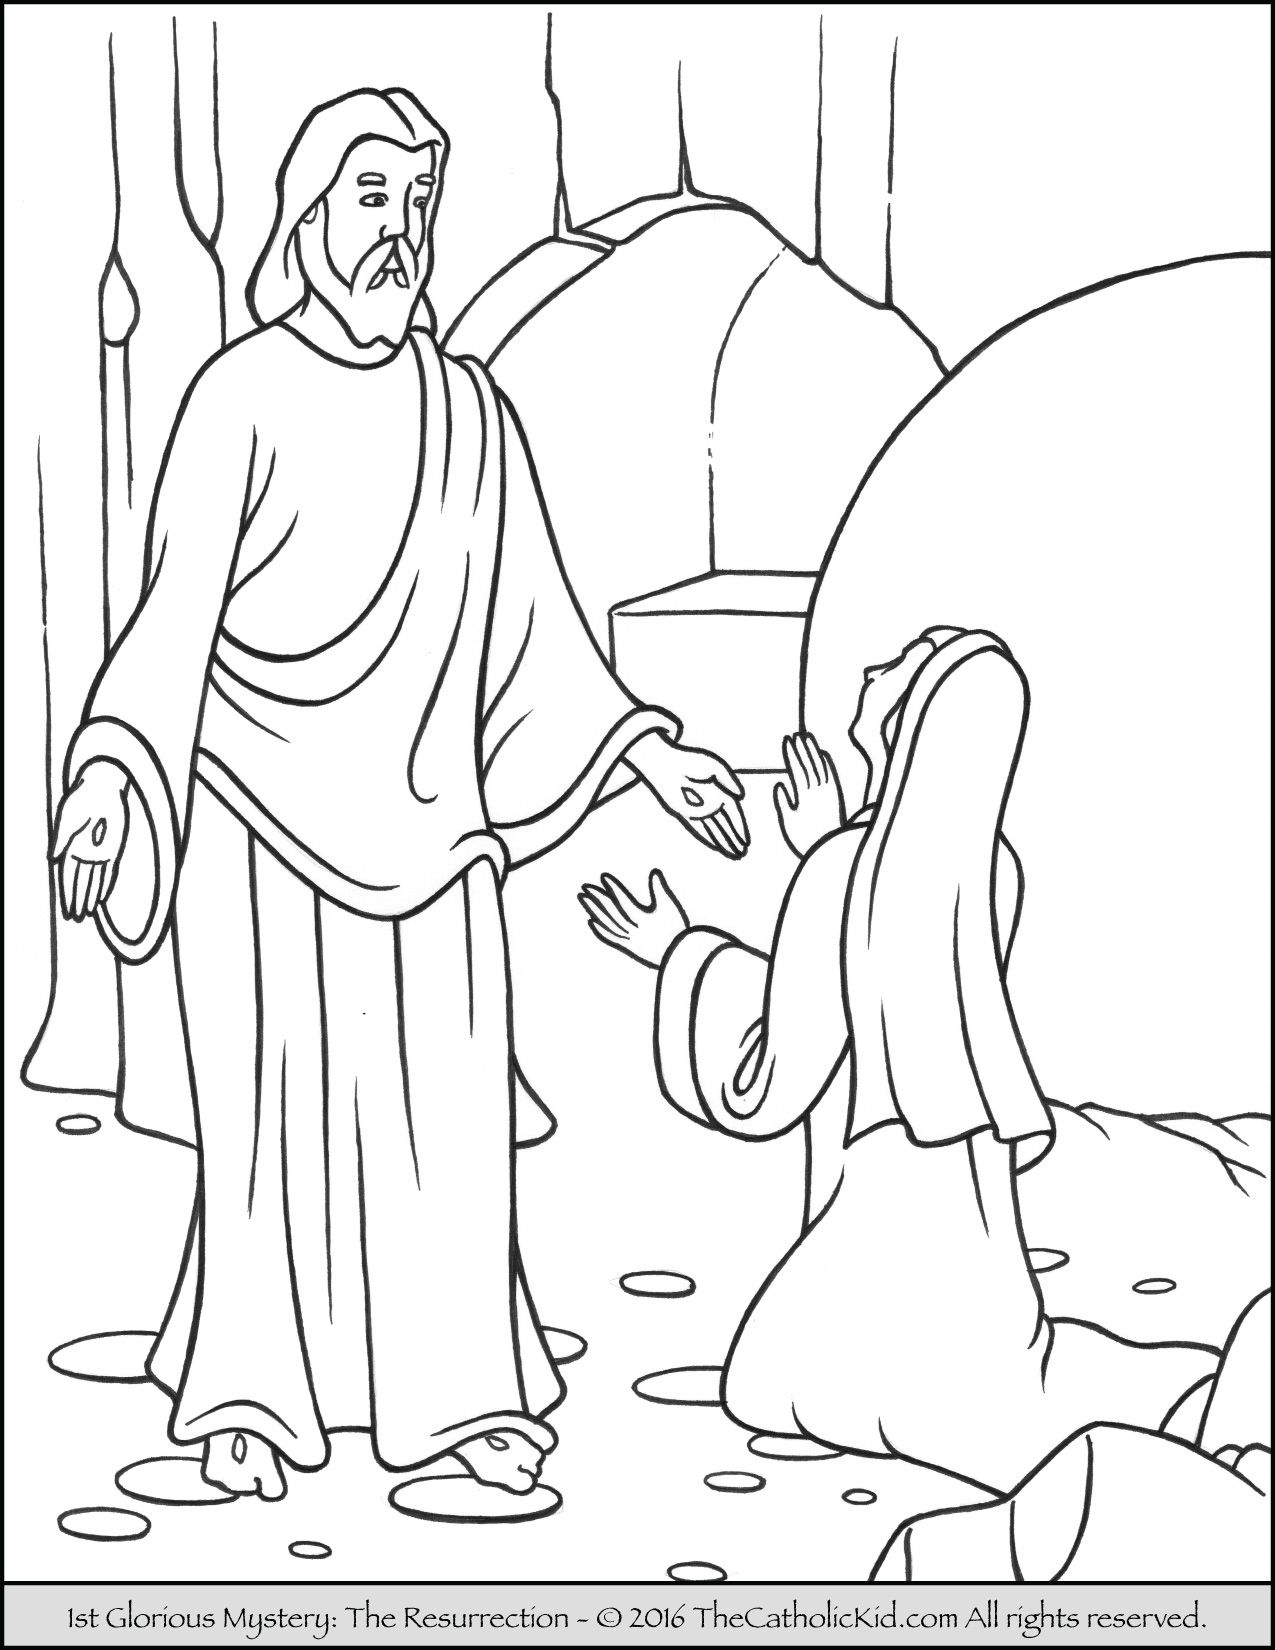 the 1st glorious mystery coloring page – the resurrection